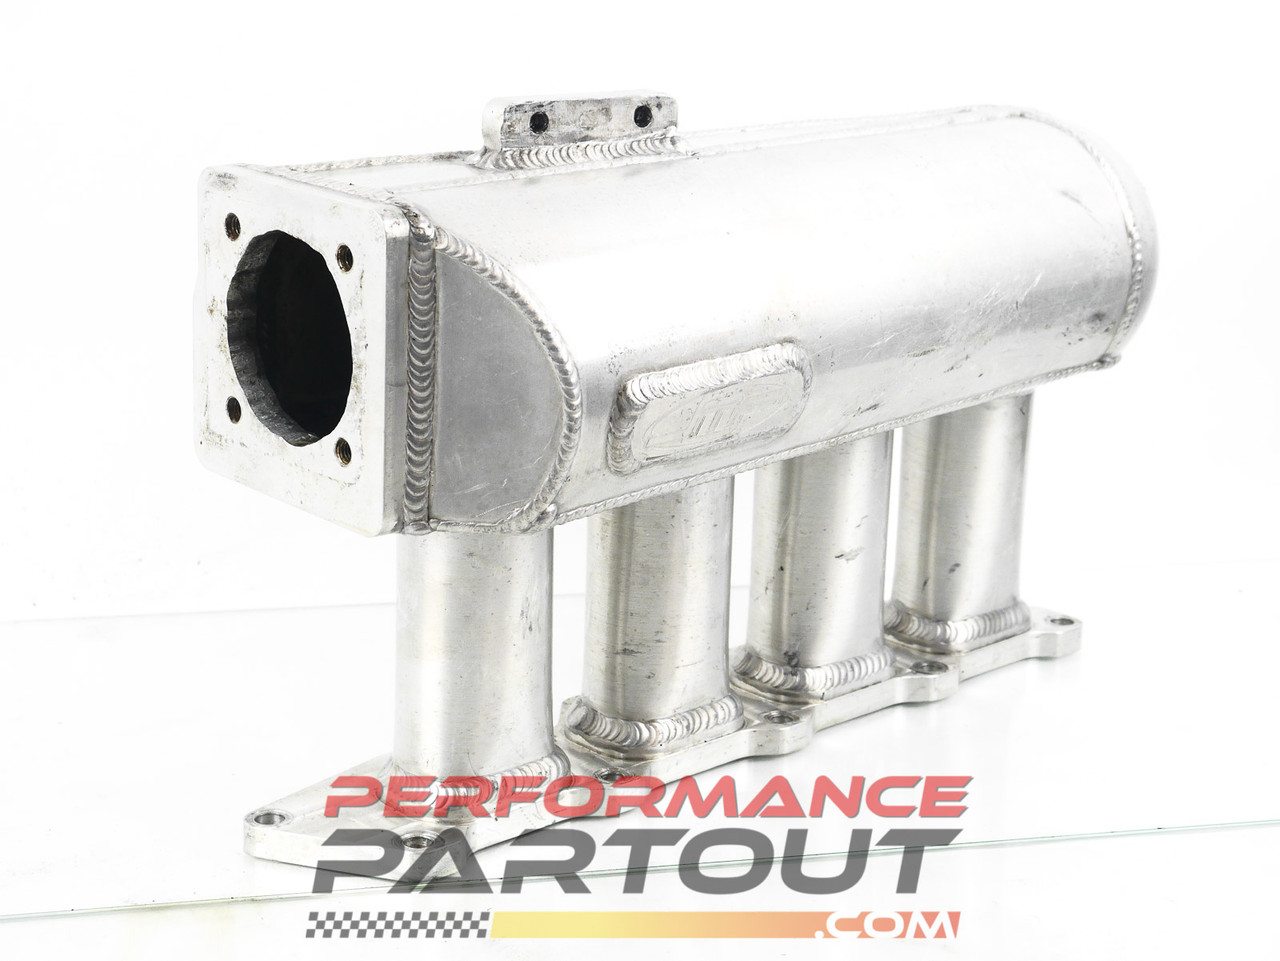 JMF Drag sheetmetal Intake manifold for 1G DSM